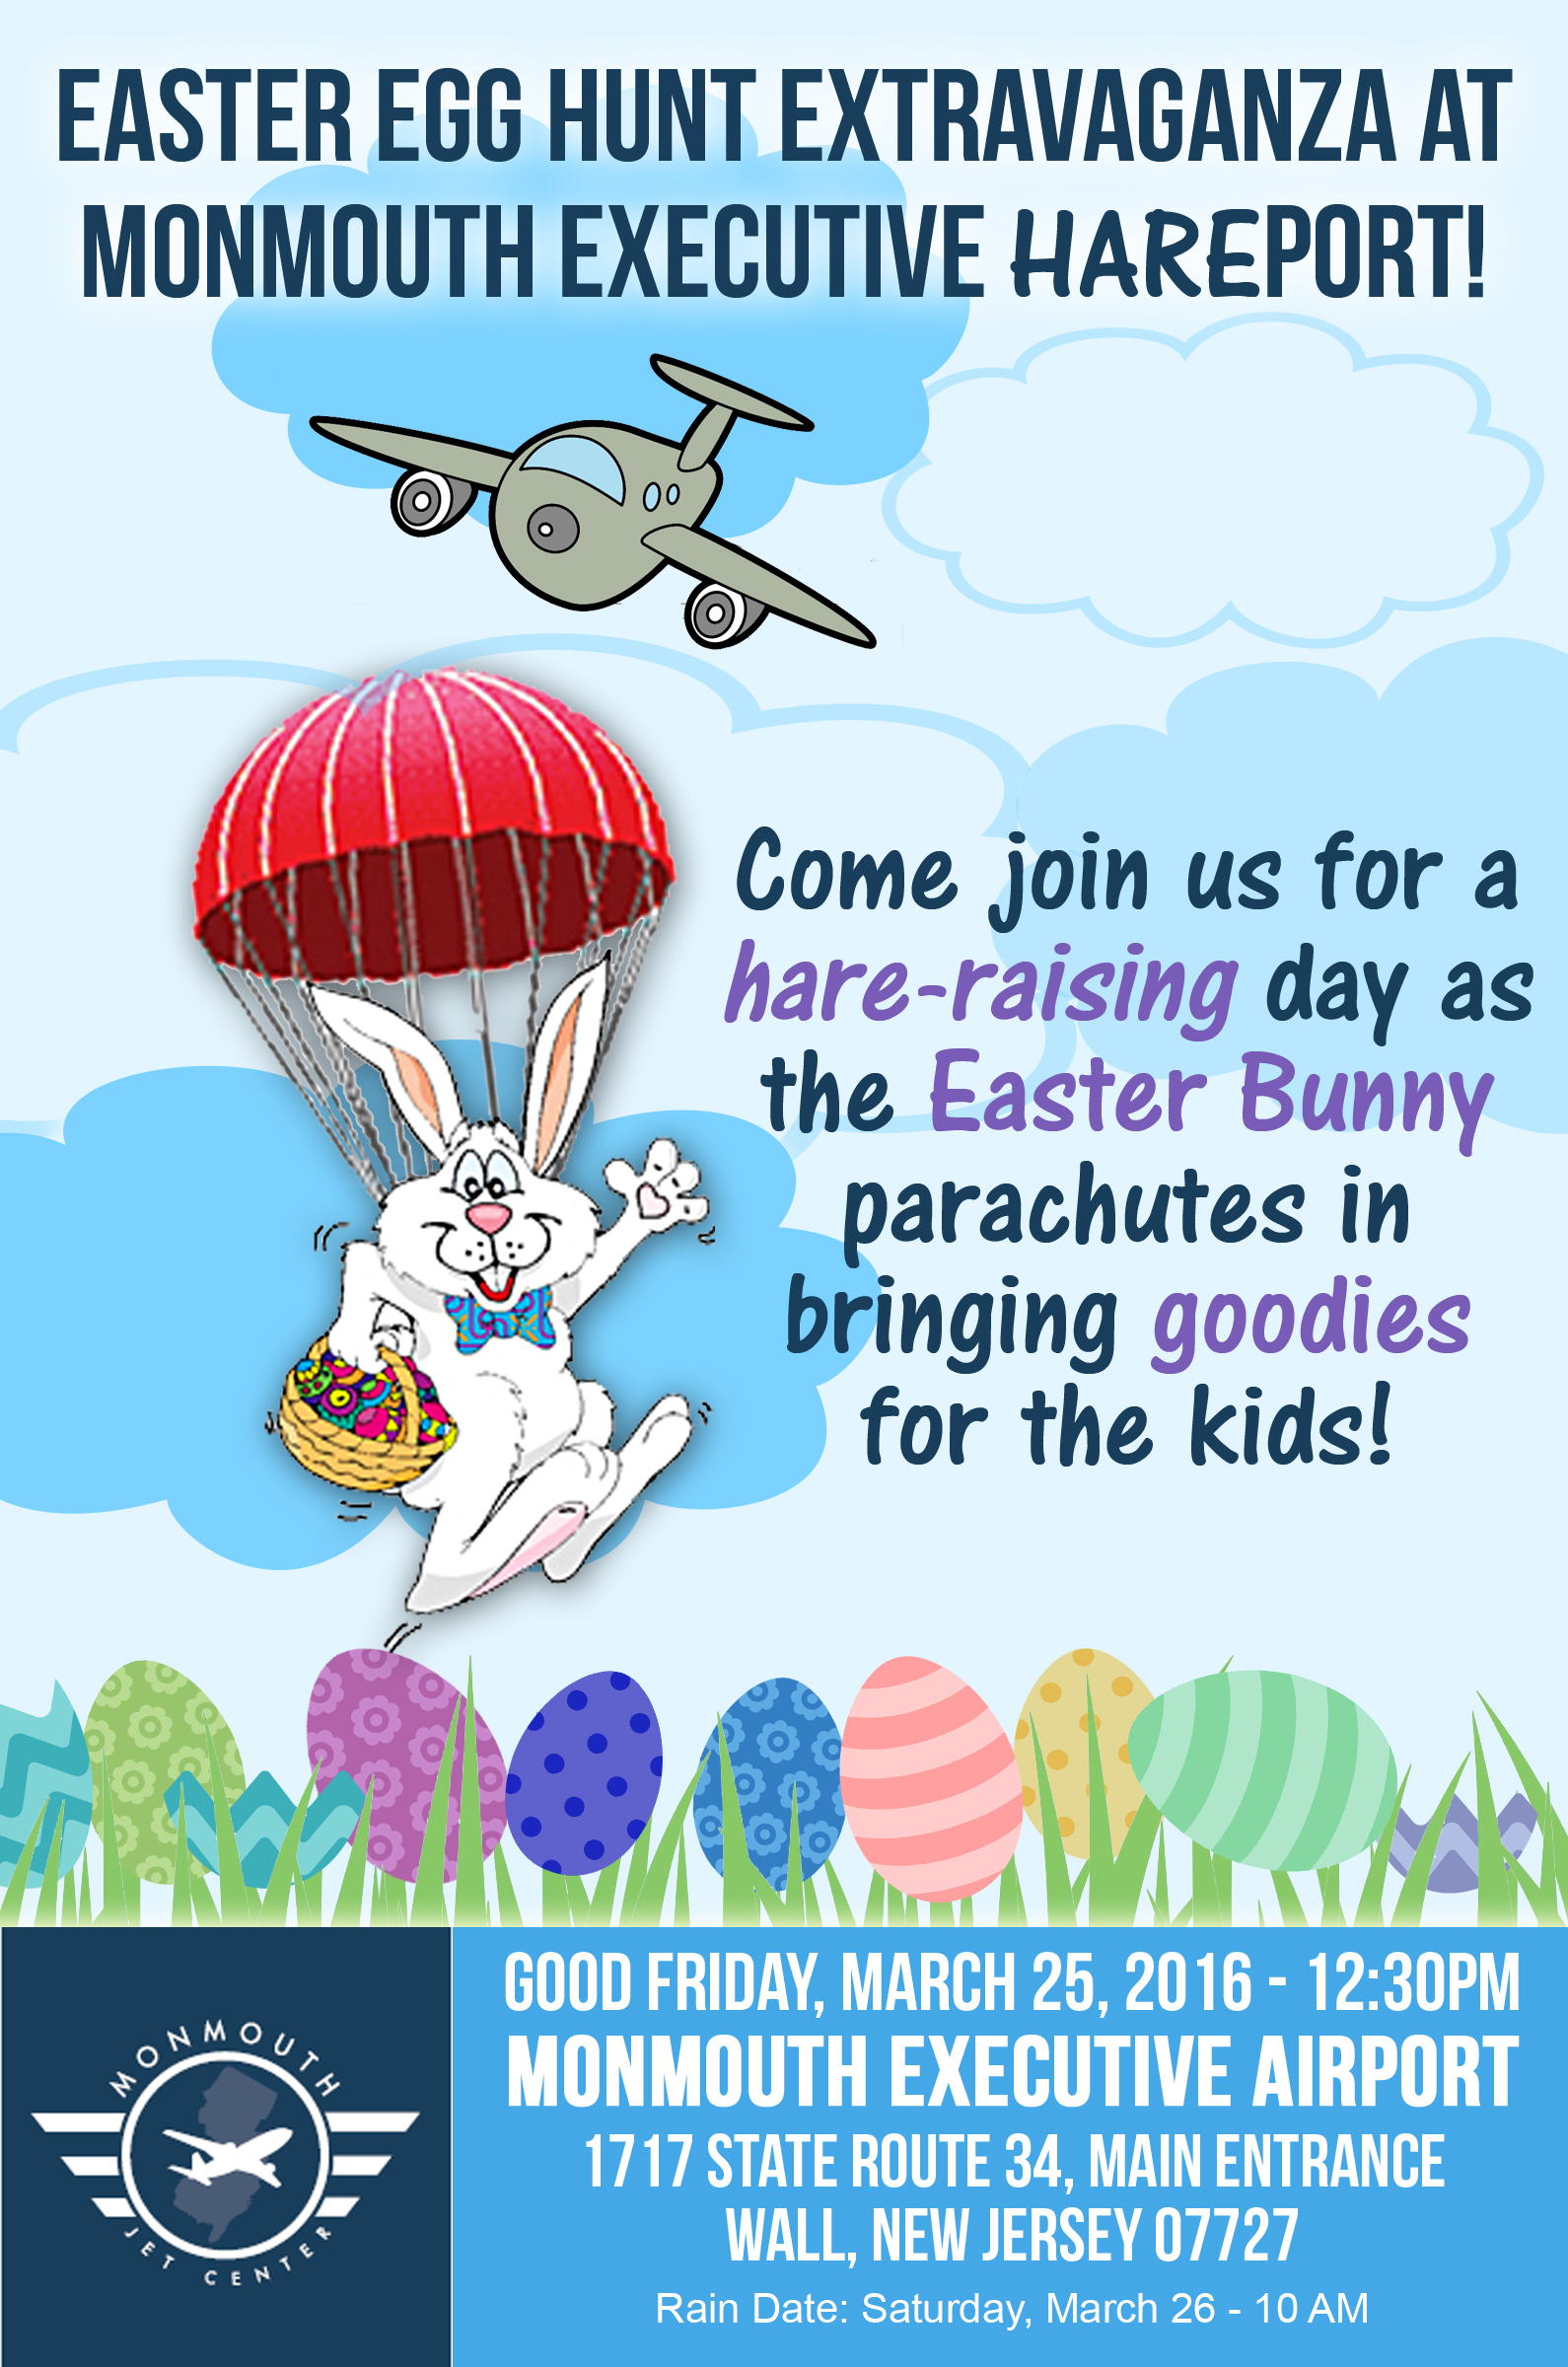 Easter Bunny AT Monmouth Airport